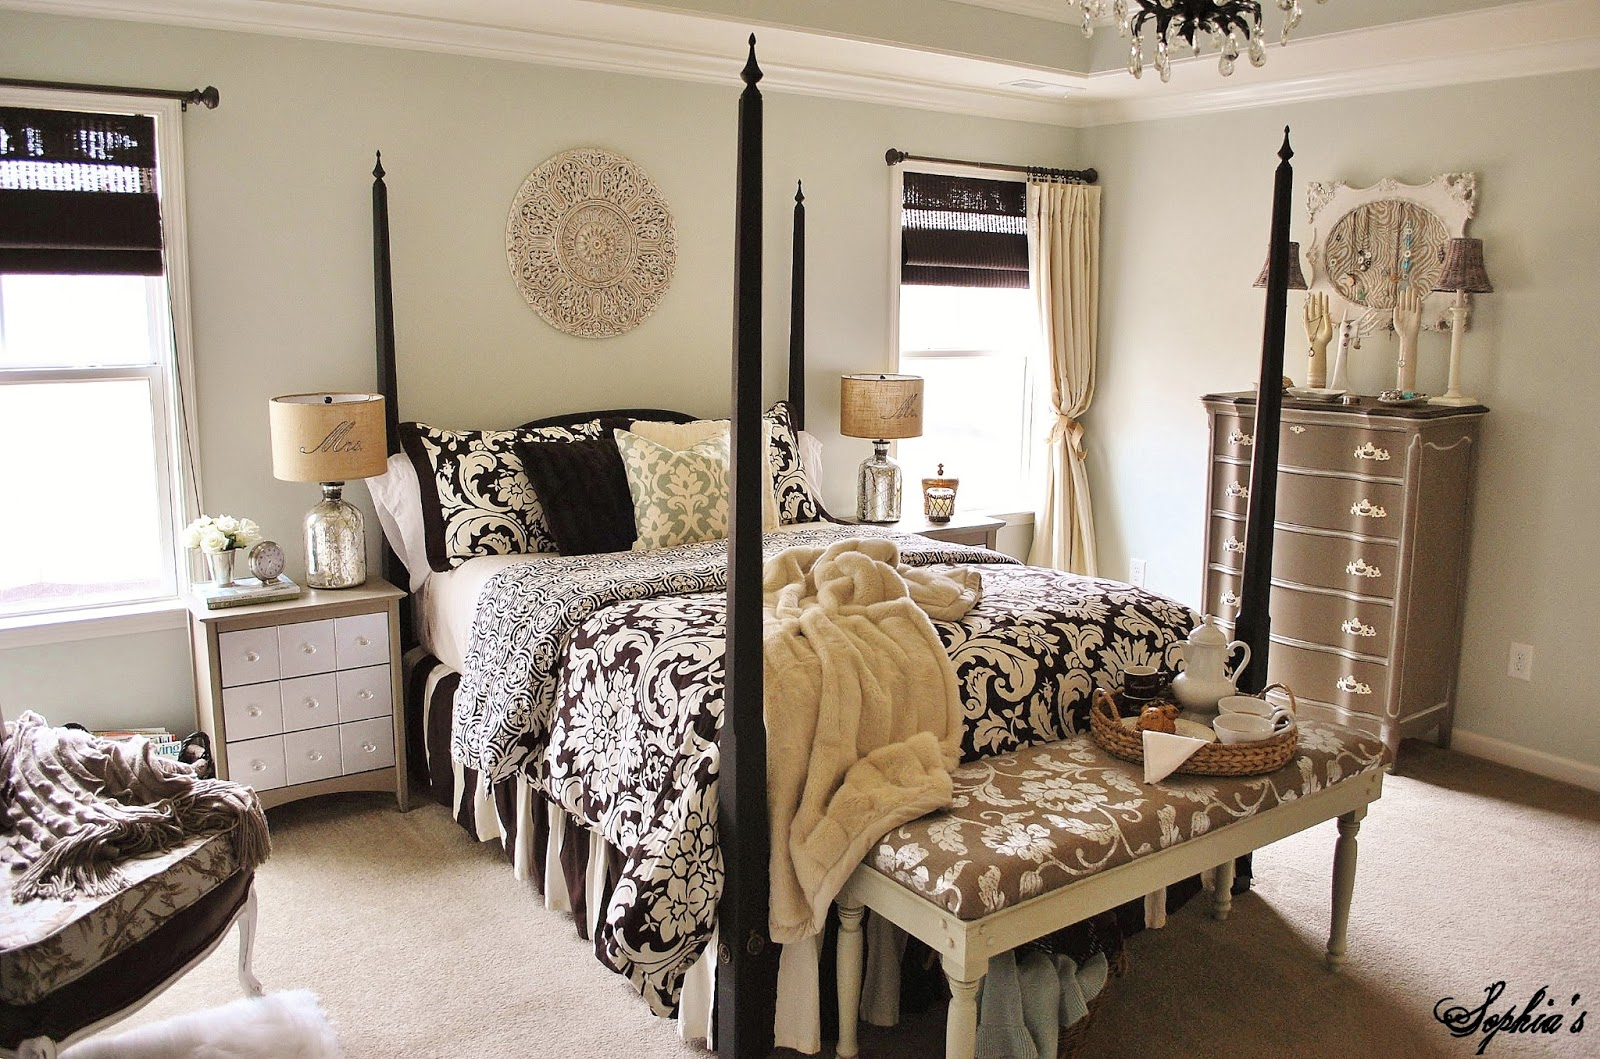 Living Room Southern Style Decor savvy southern style my favorite room sophias decor 1 12 2013